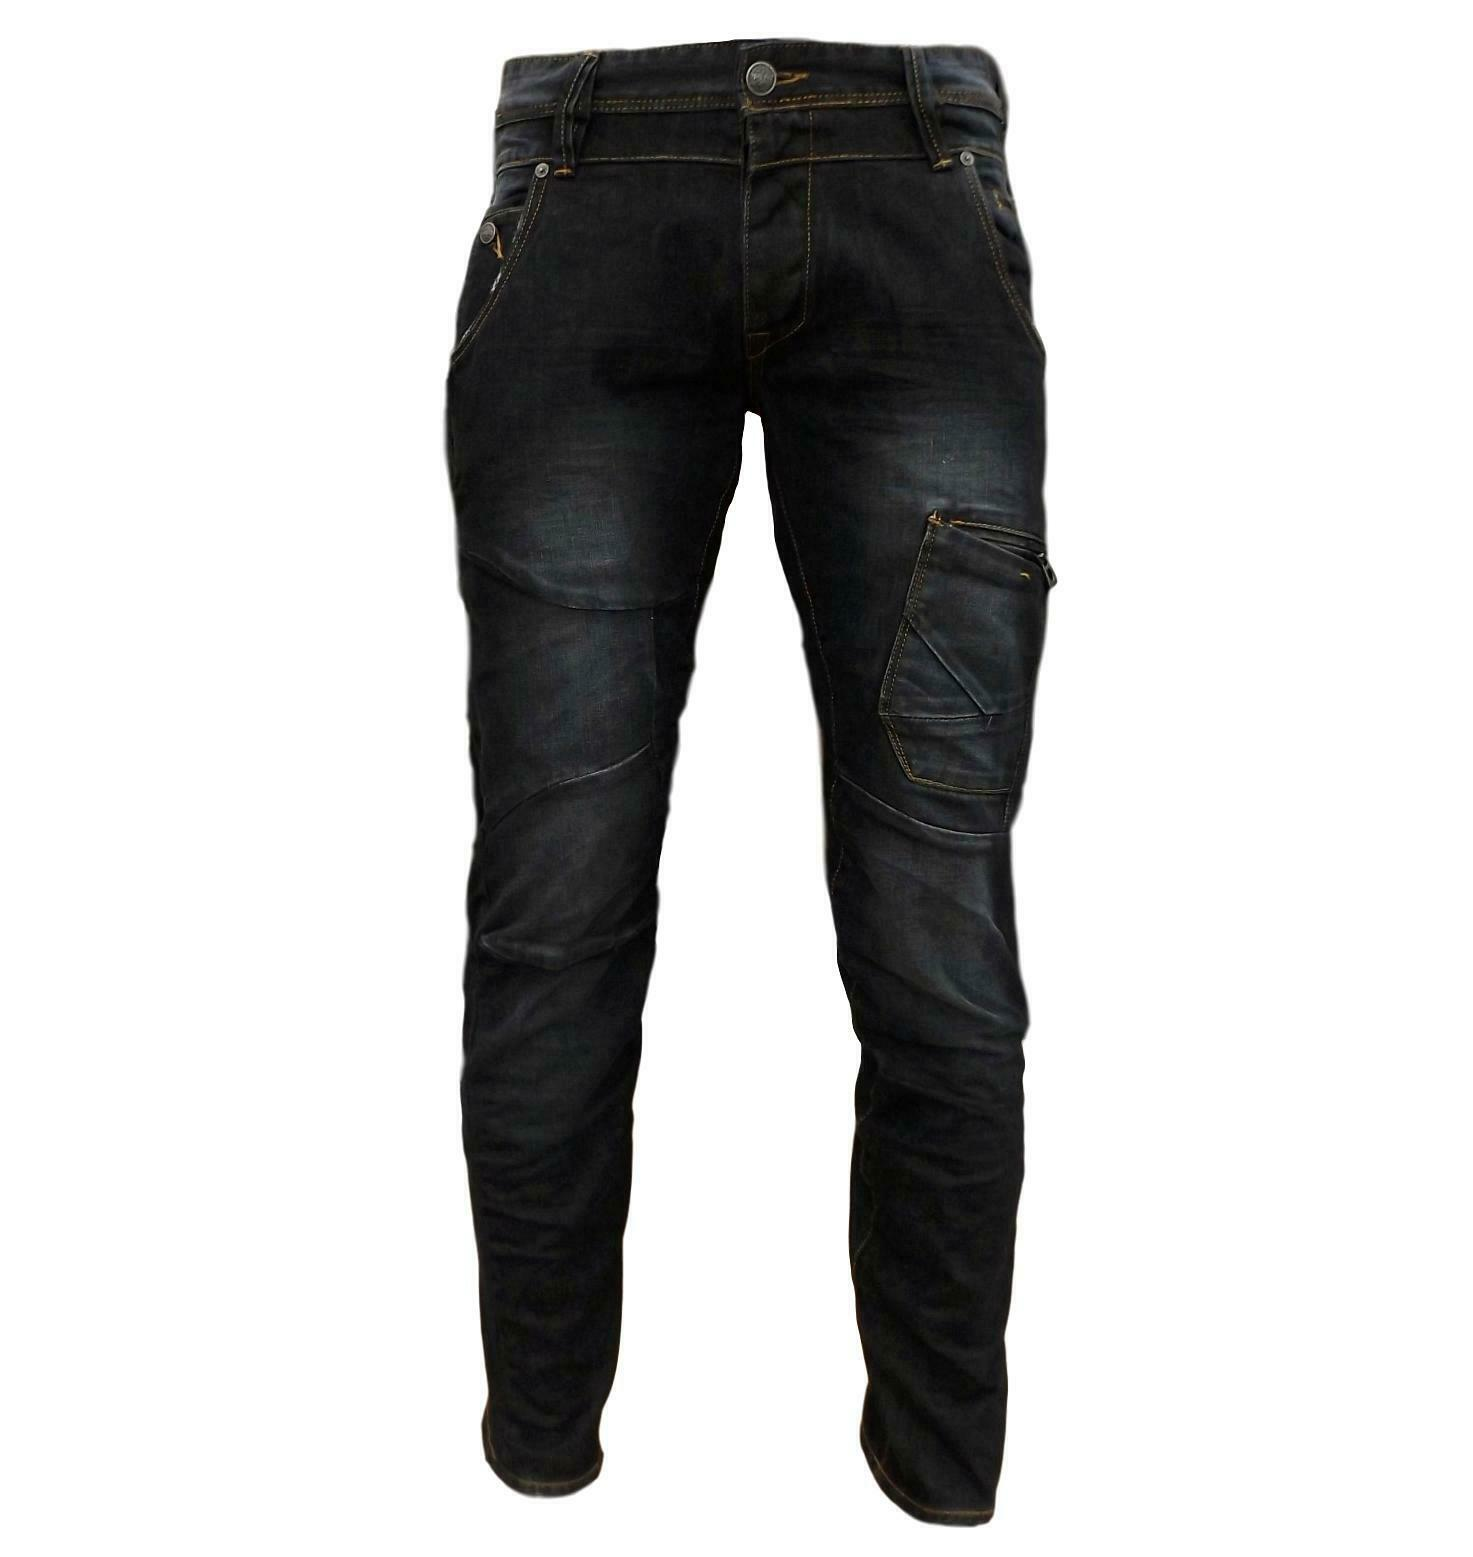 Da Uomo 883 Police Aivali Twisted Bottone Denim Jeans Nero Lavato